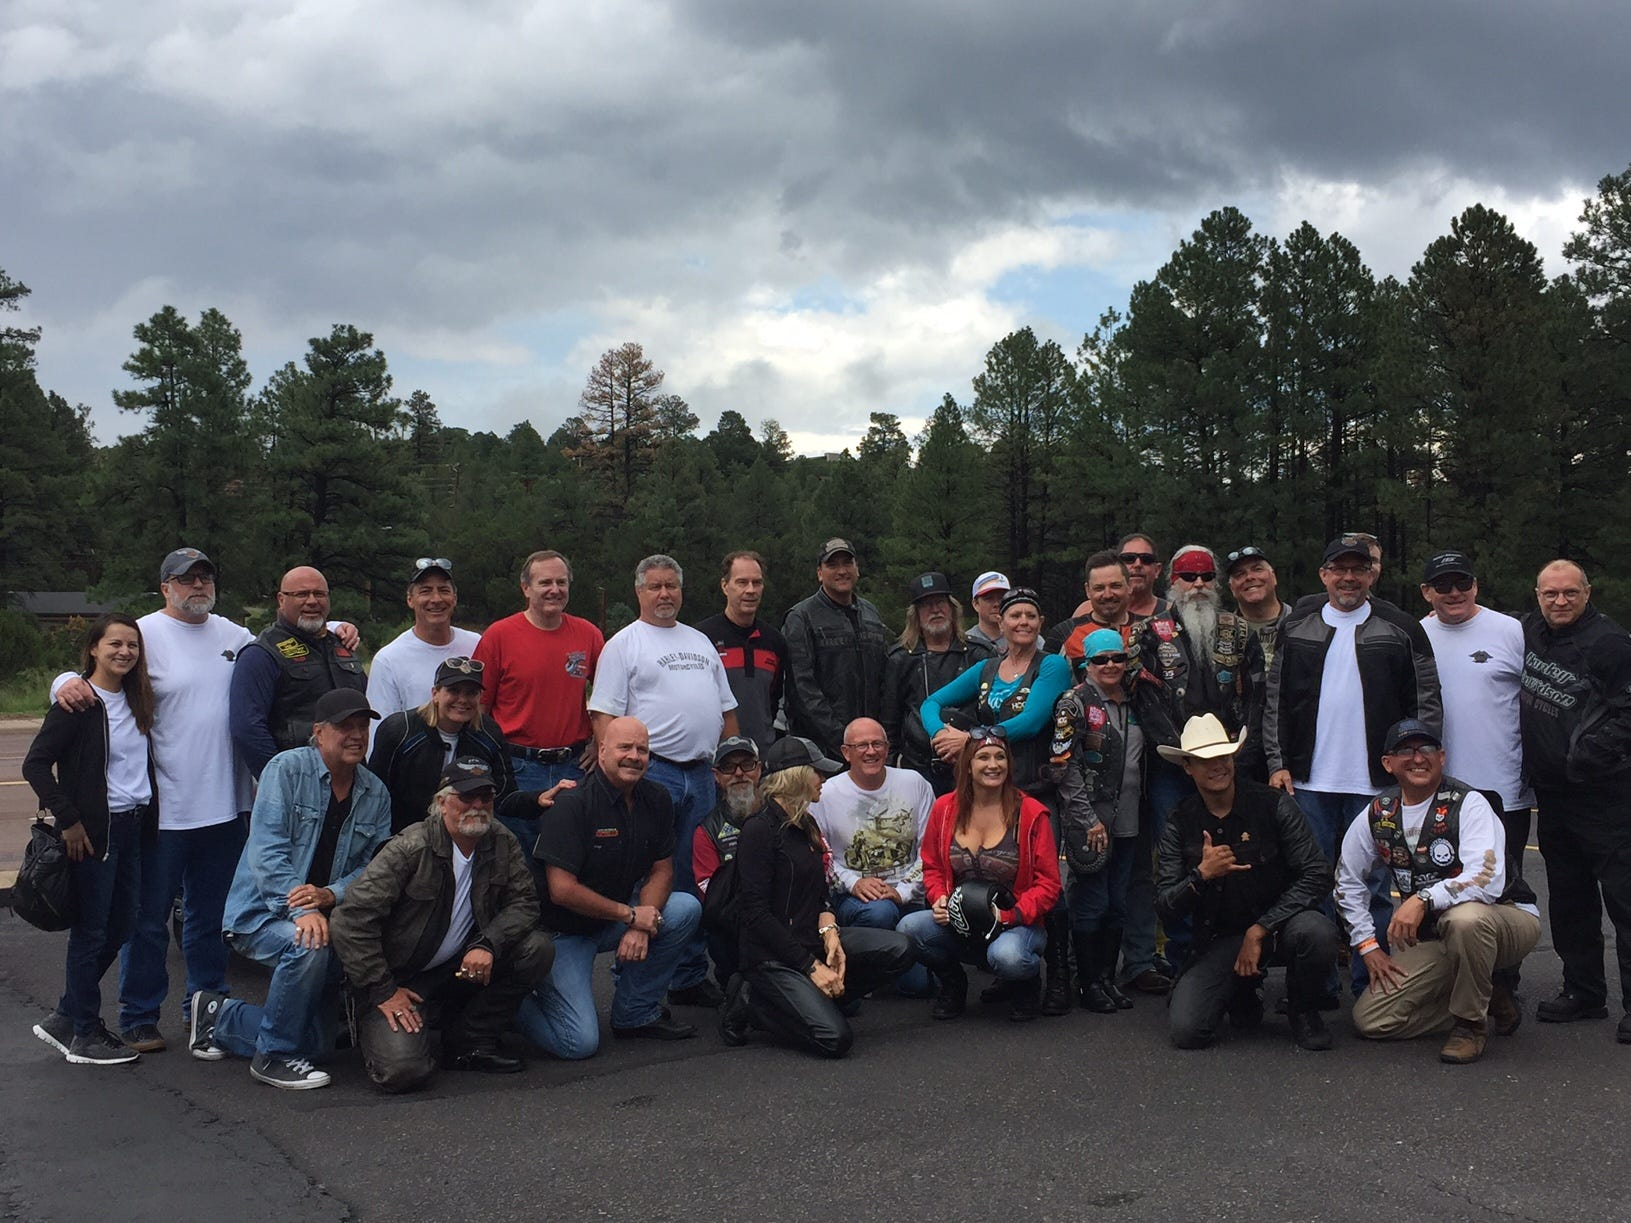 About 70 riders pose for a group shot after making a lunch stop for burgers at the Red Onion in Overgaard, Arizona. Most of the riders headed back to Phoenix, leaving about 20 bikes to make the trek to Gallup, New Mexico.